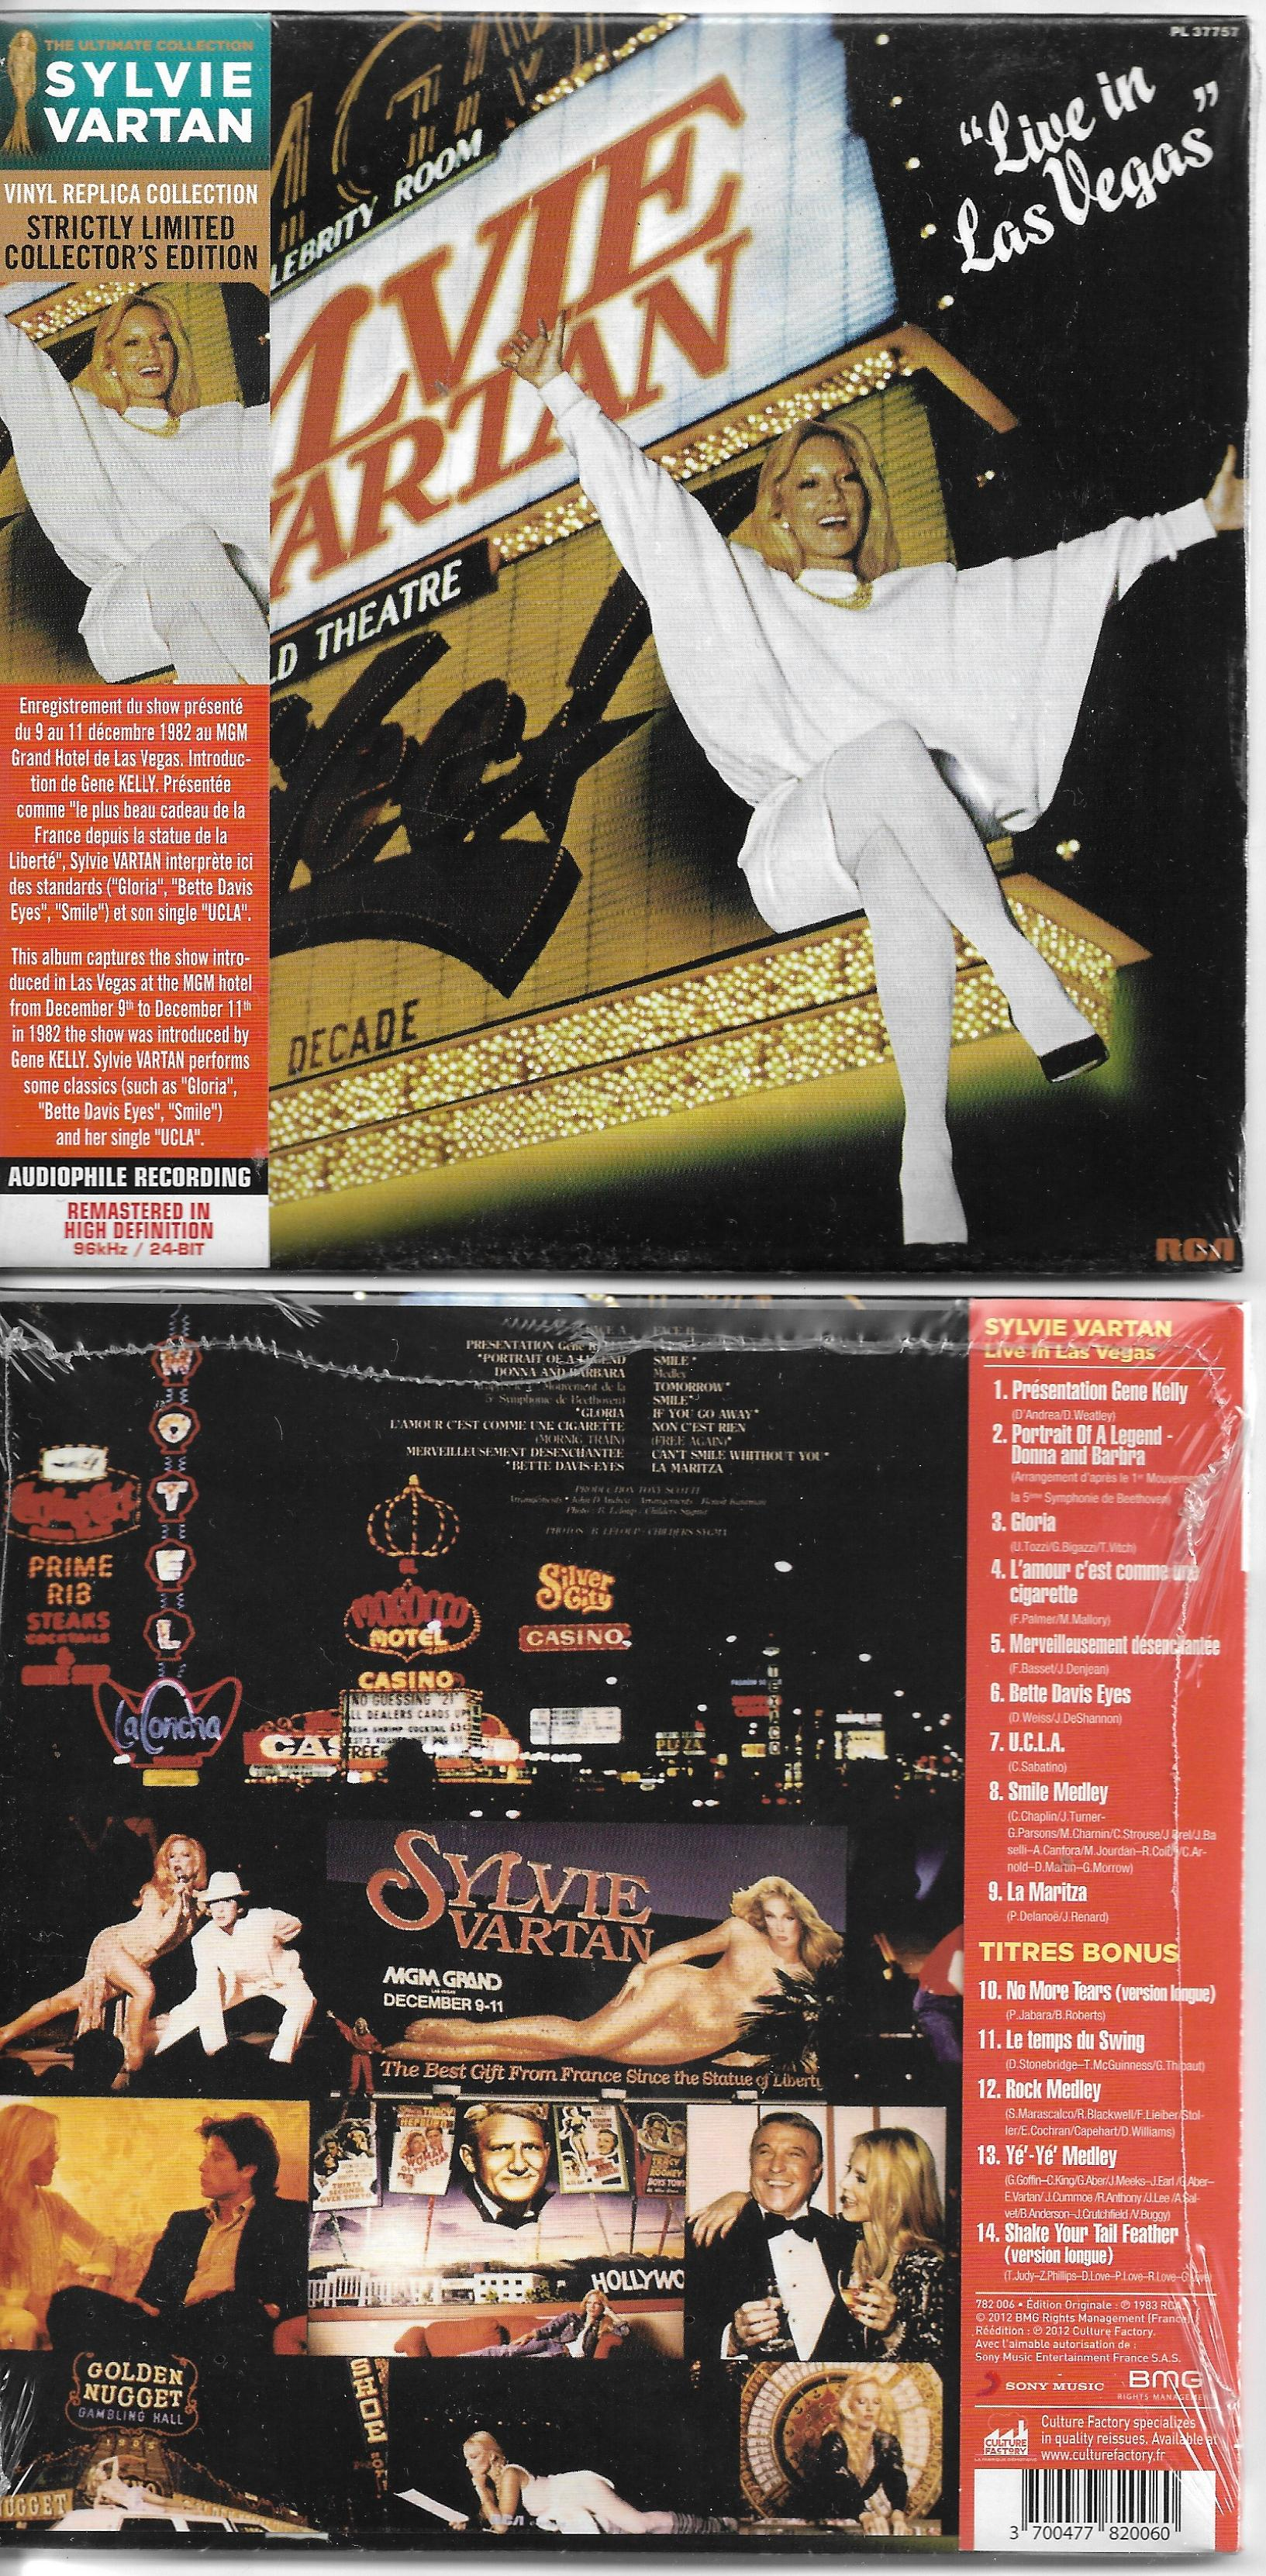 SYLVIE VARTAN - Live in Las Vegas - Mini LP - REMASTERED - Ltd Ed - 14 -track - inc 5 bonus tracks - CD